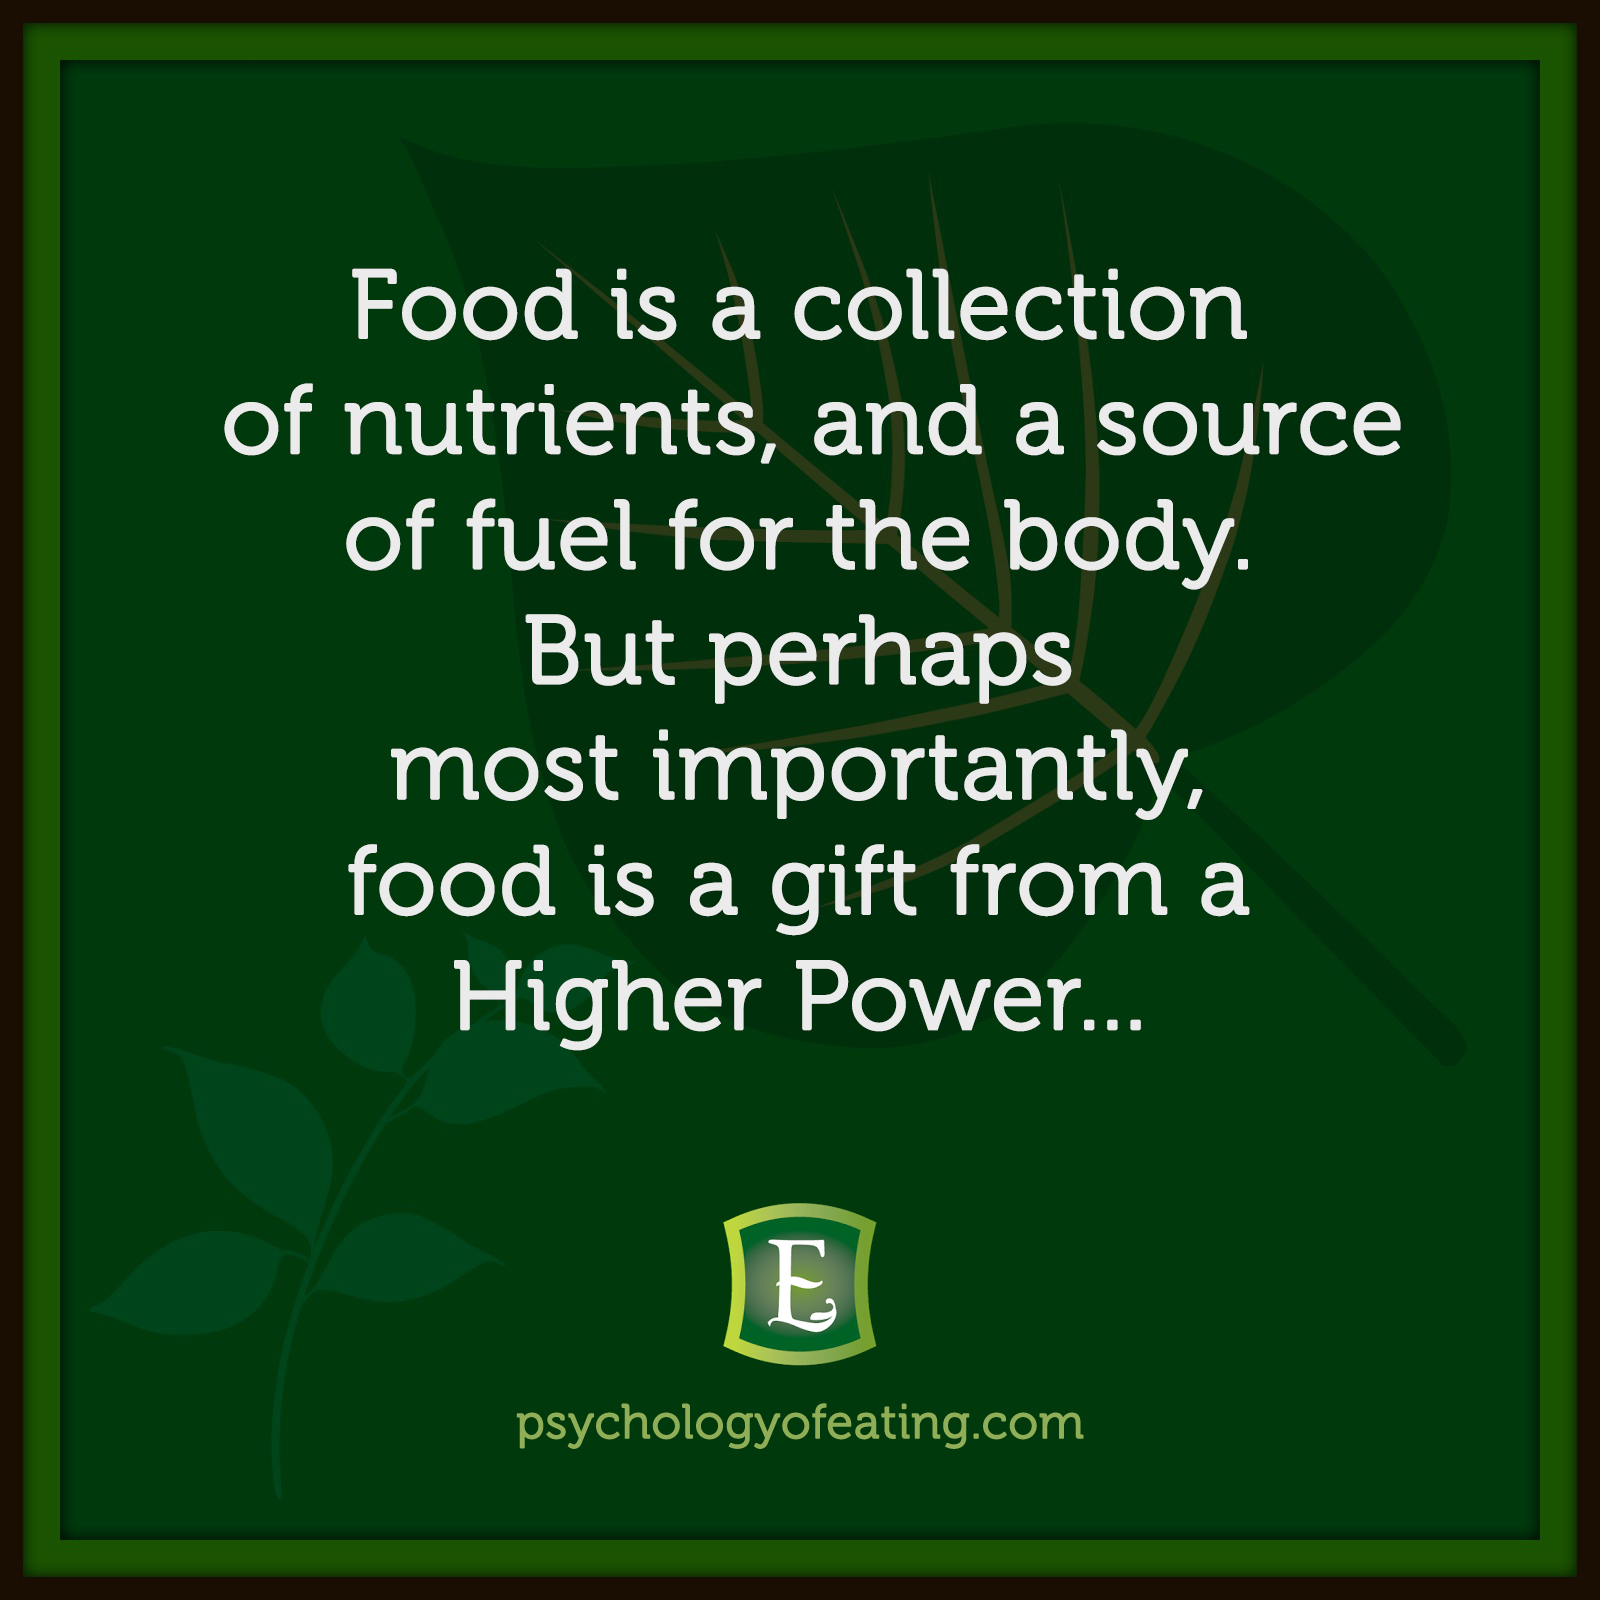 Food is a collection of nutrients, and a source of fuel for the body. But perhaps most importantly, food is a gift from a Higher Power…   Marc David #health #nutrition #eatingpsychology #IPE